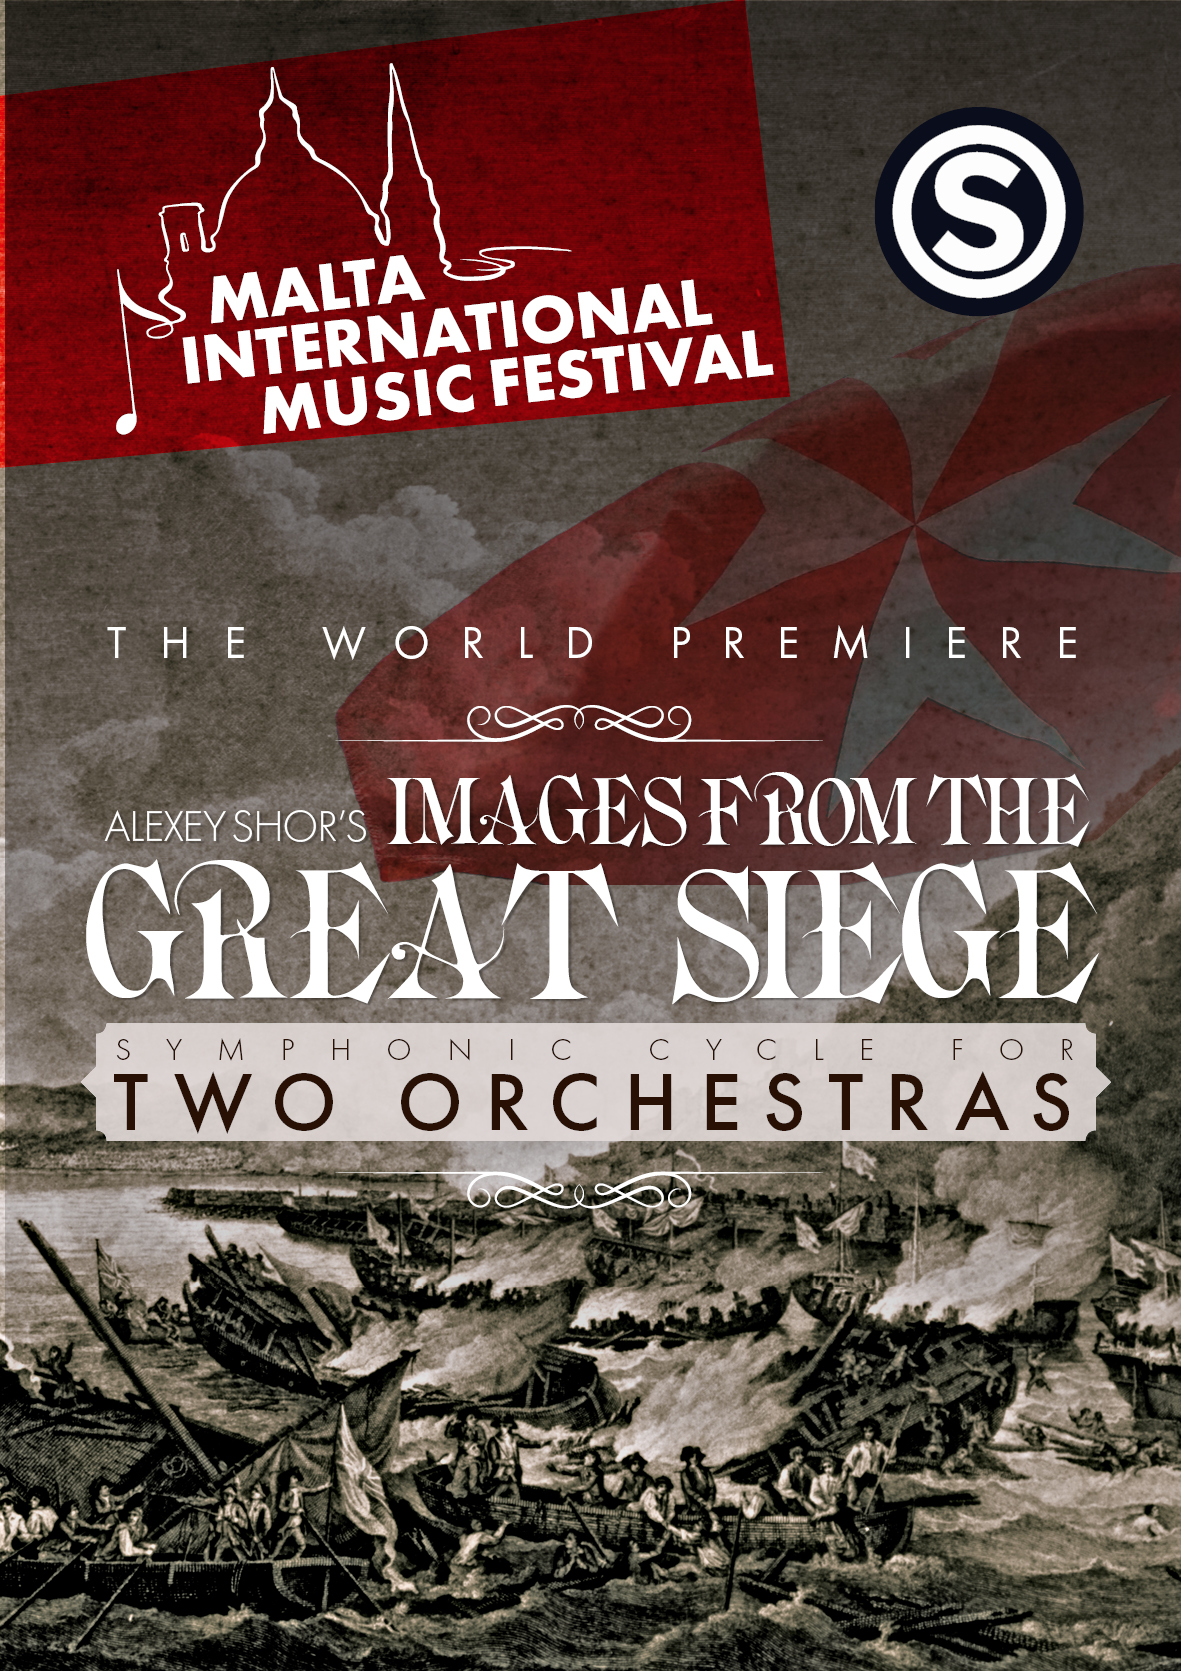 'IMAGES FROM THE GREAT SIEGE' flyer